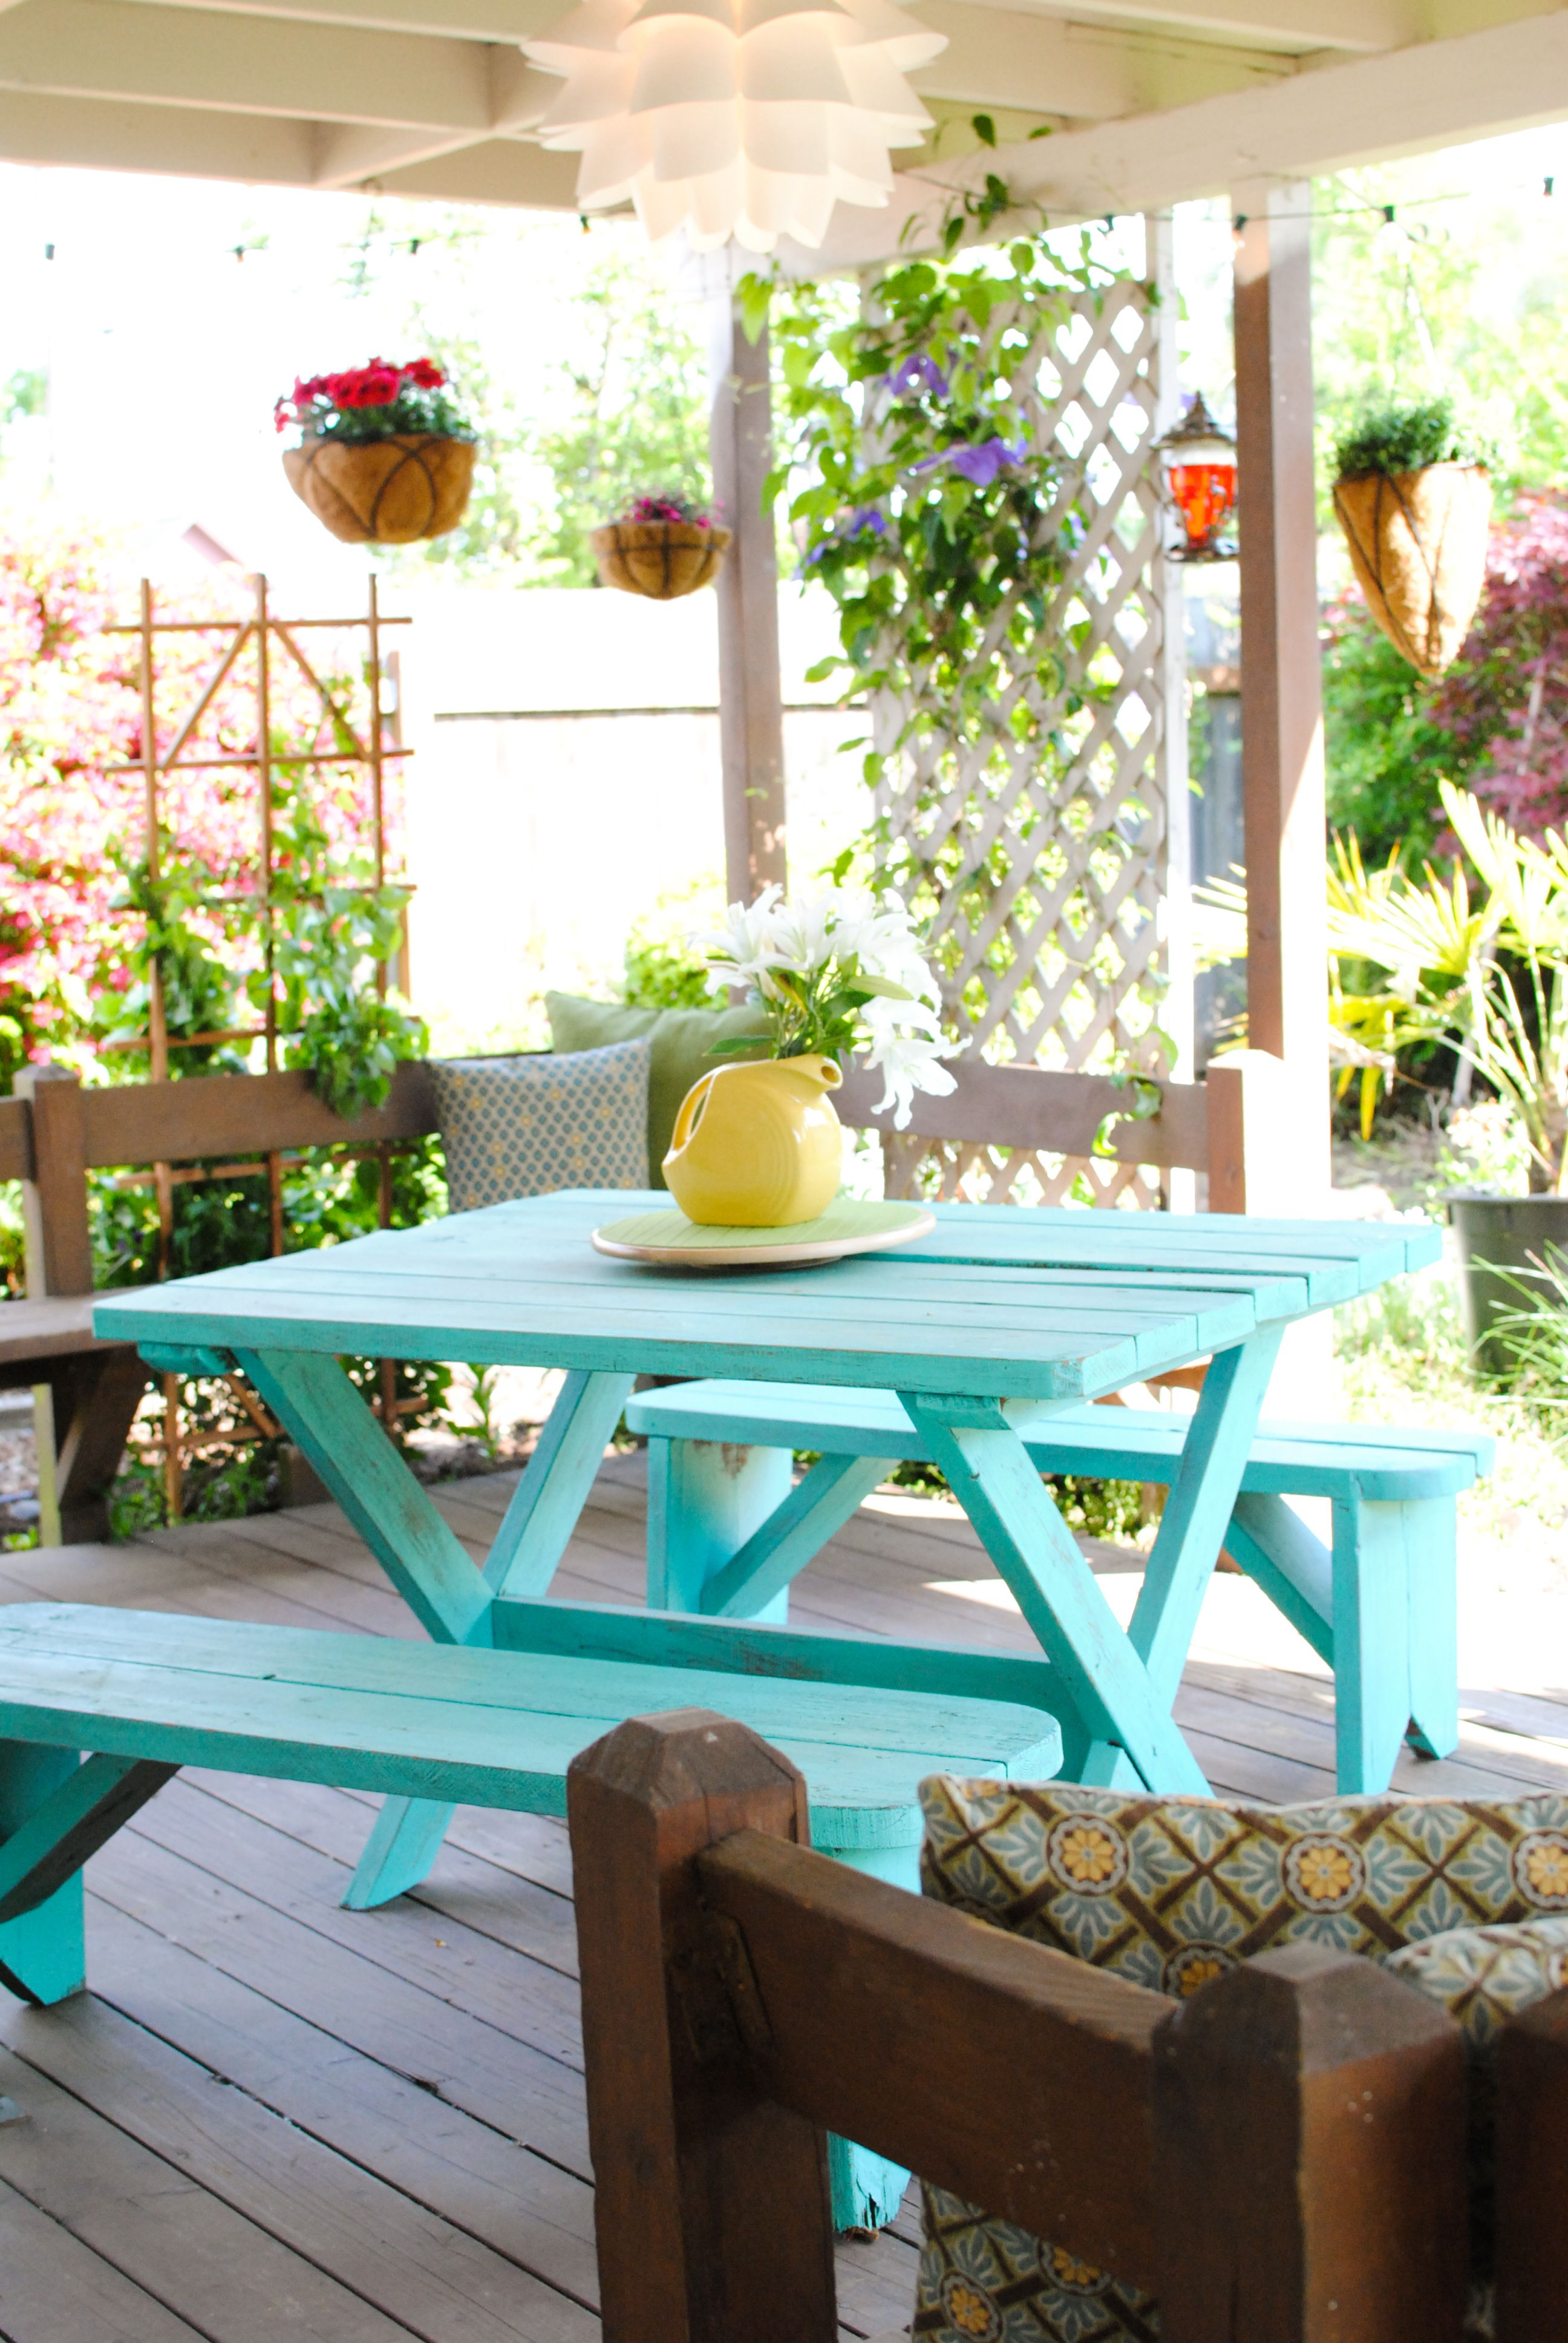 Turquoise Picnic Table My Backyard Paradise Love This Painted In Would Be Cute With A Hole Drilled Down The Center For An Umbrella